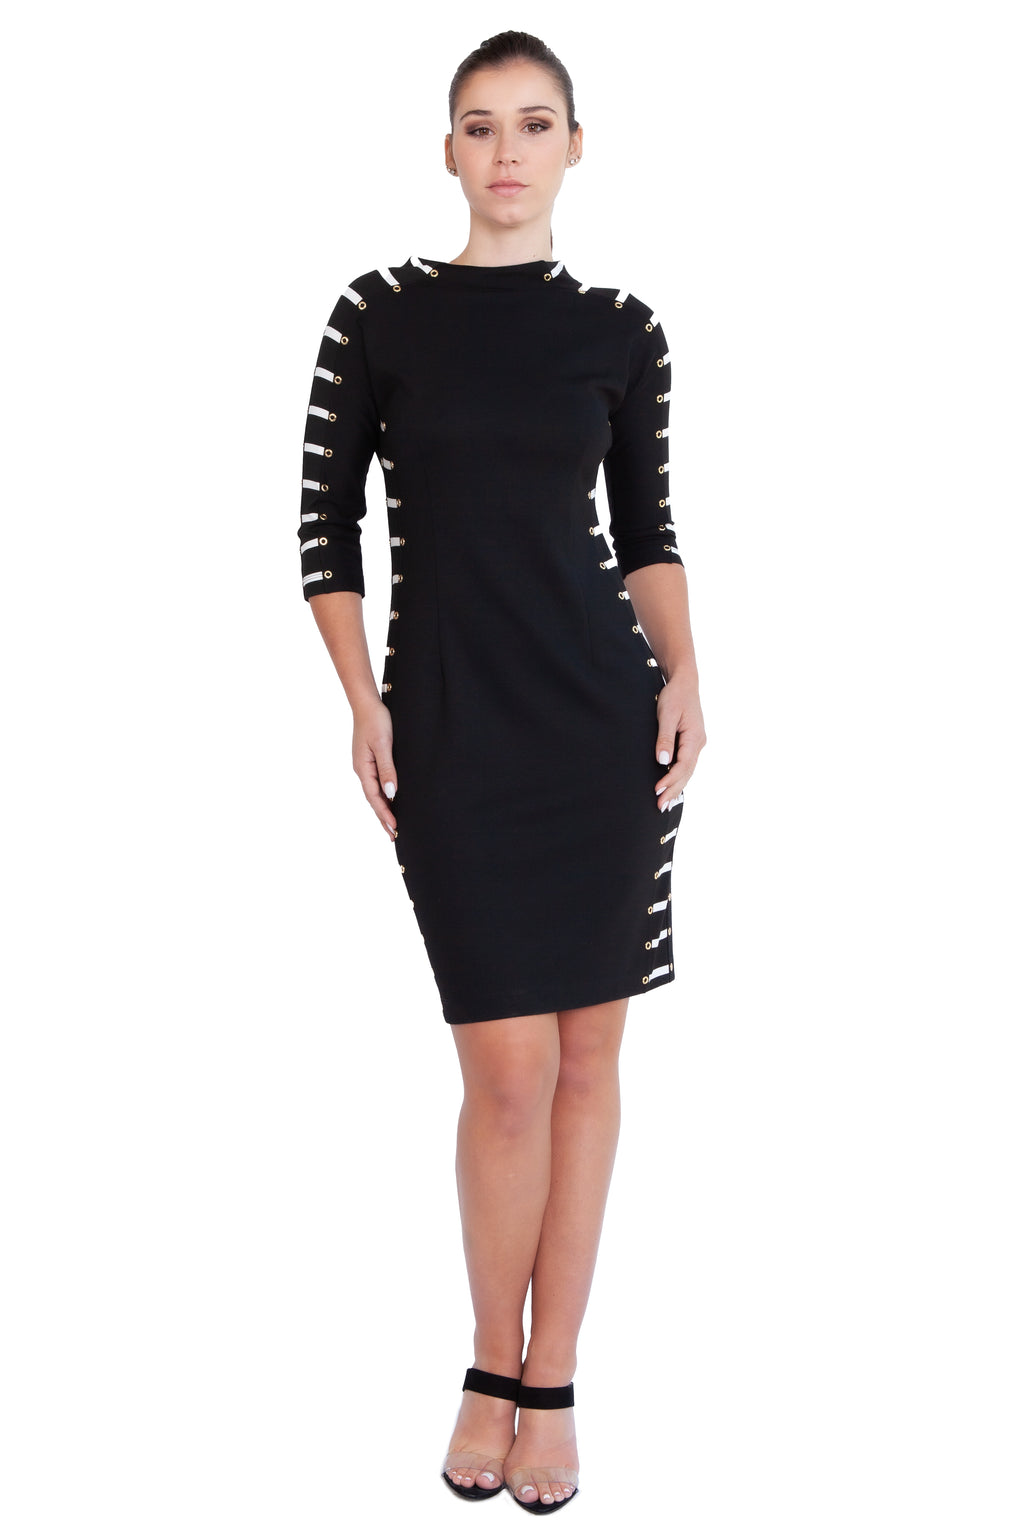 Grommet Racer Dress - W1500601